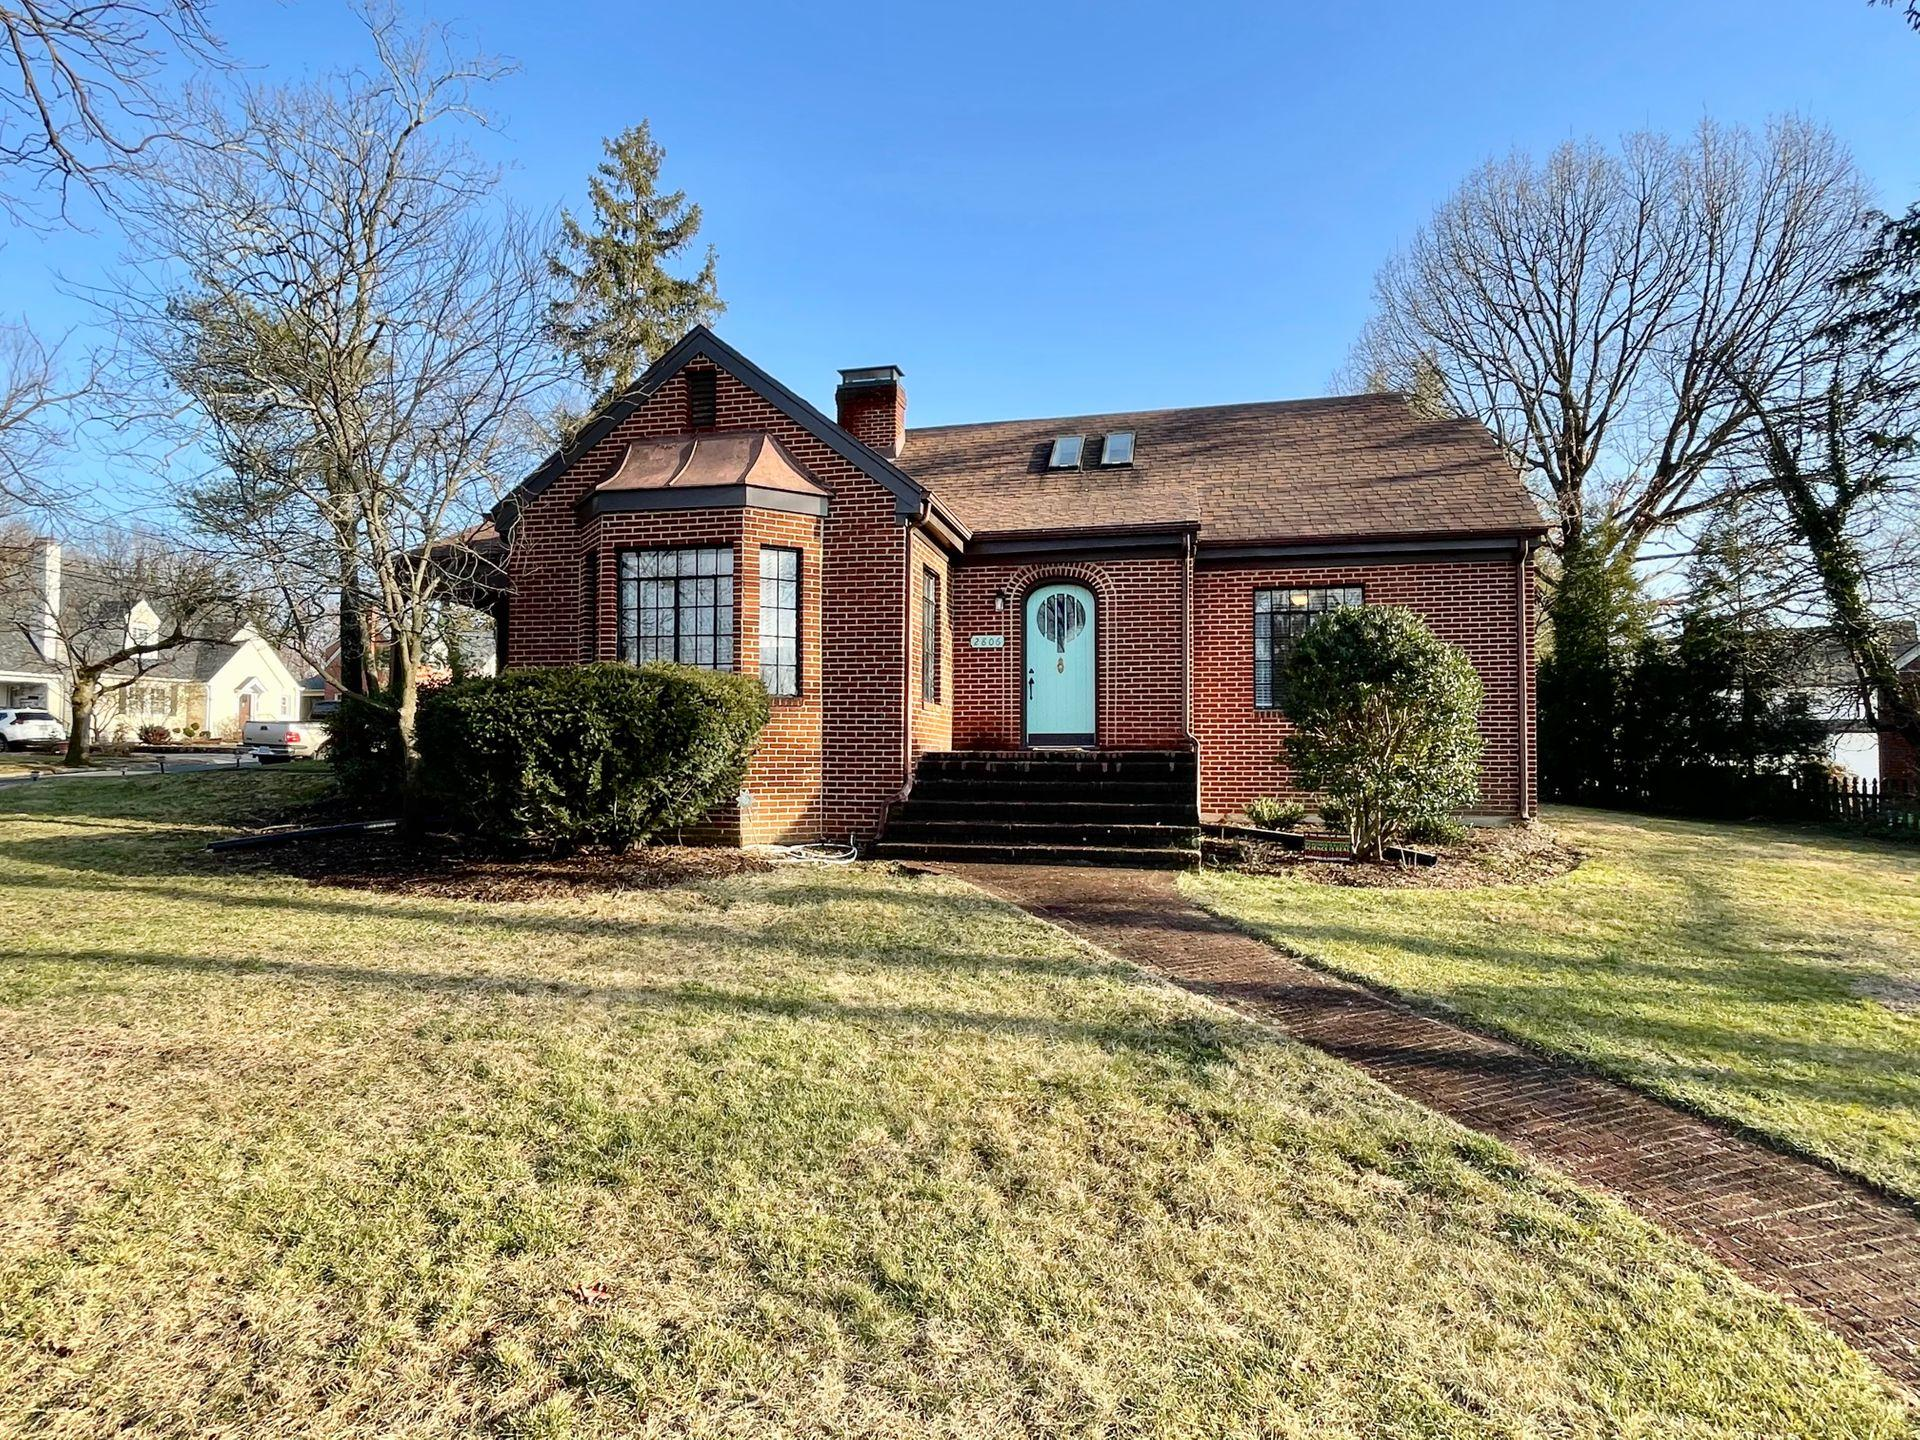 Property Image for 2806 Woodlawn Ave